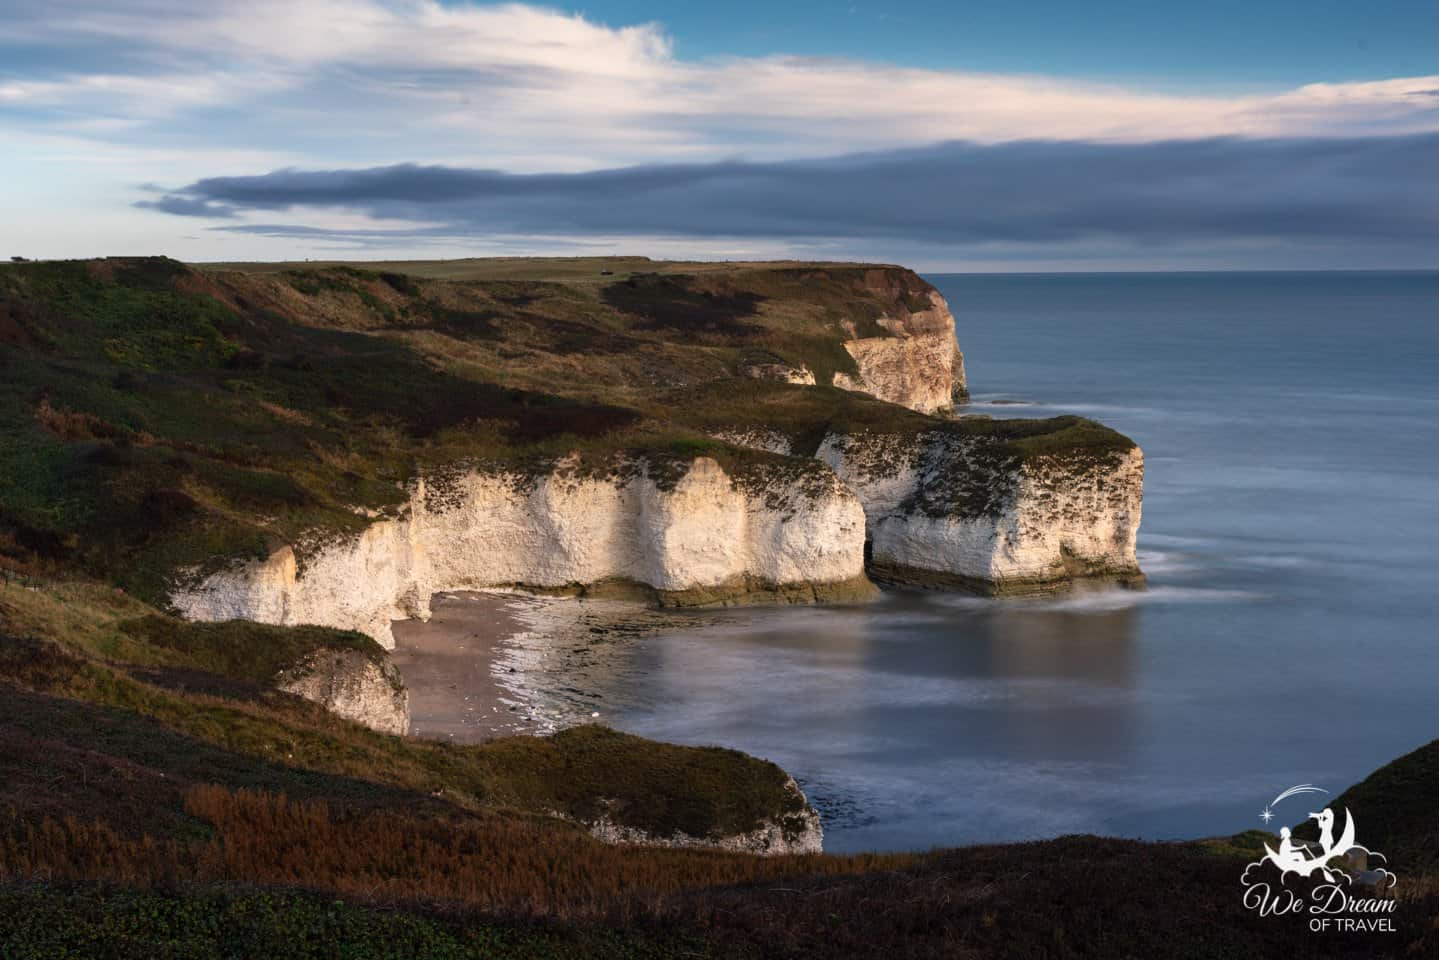 Sunset photography location at Flamborough Headland Heritage coast.